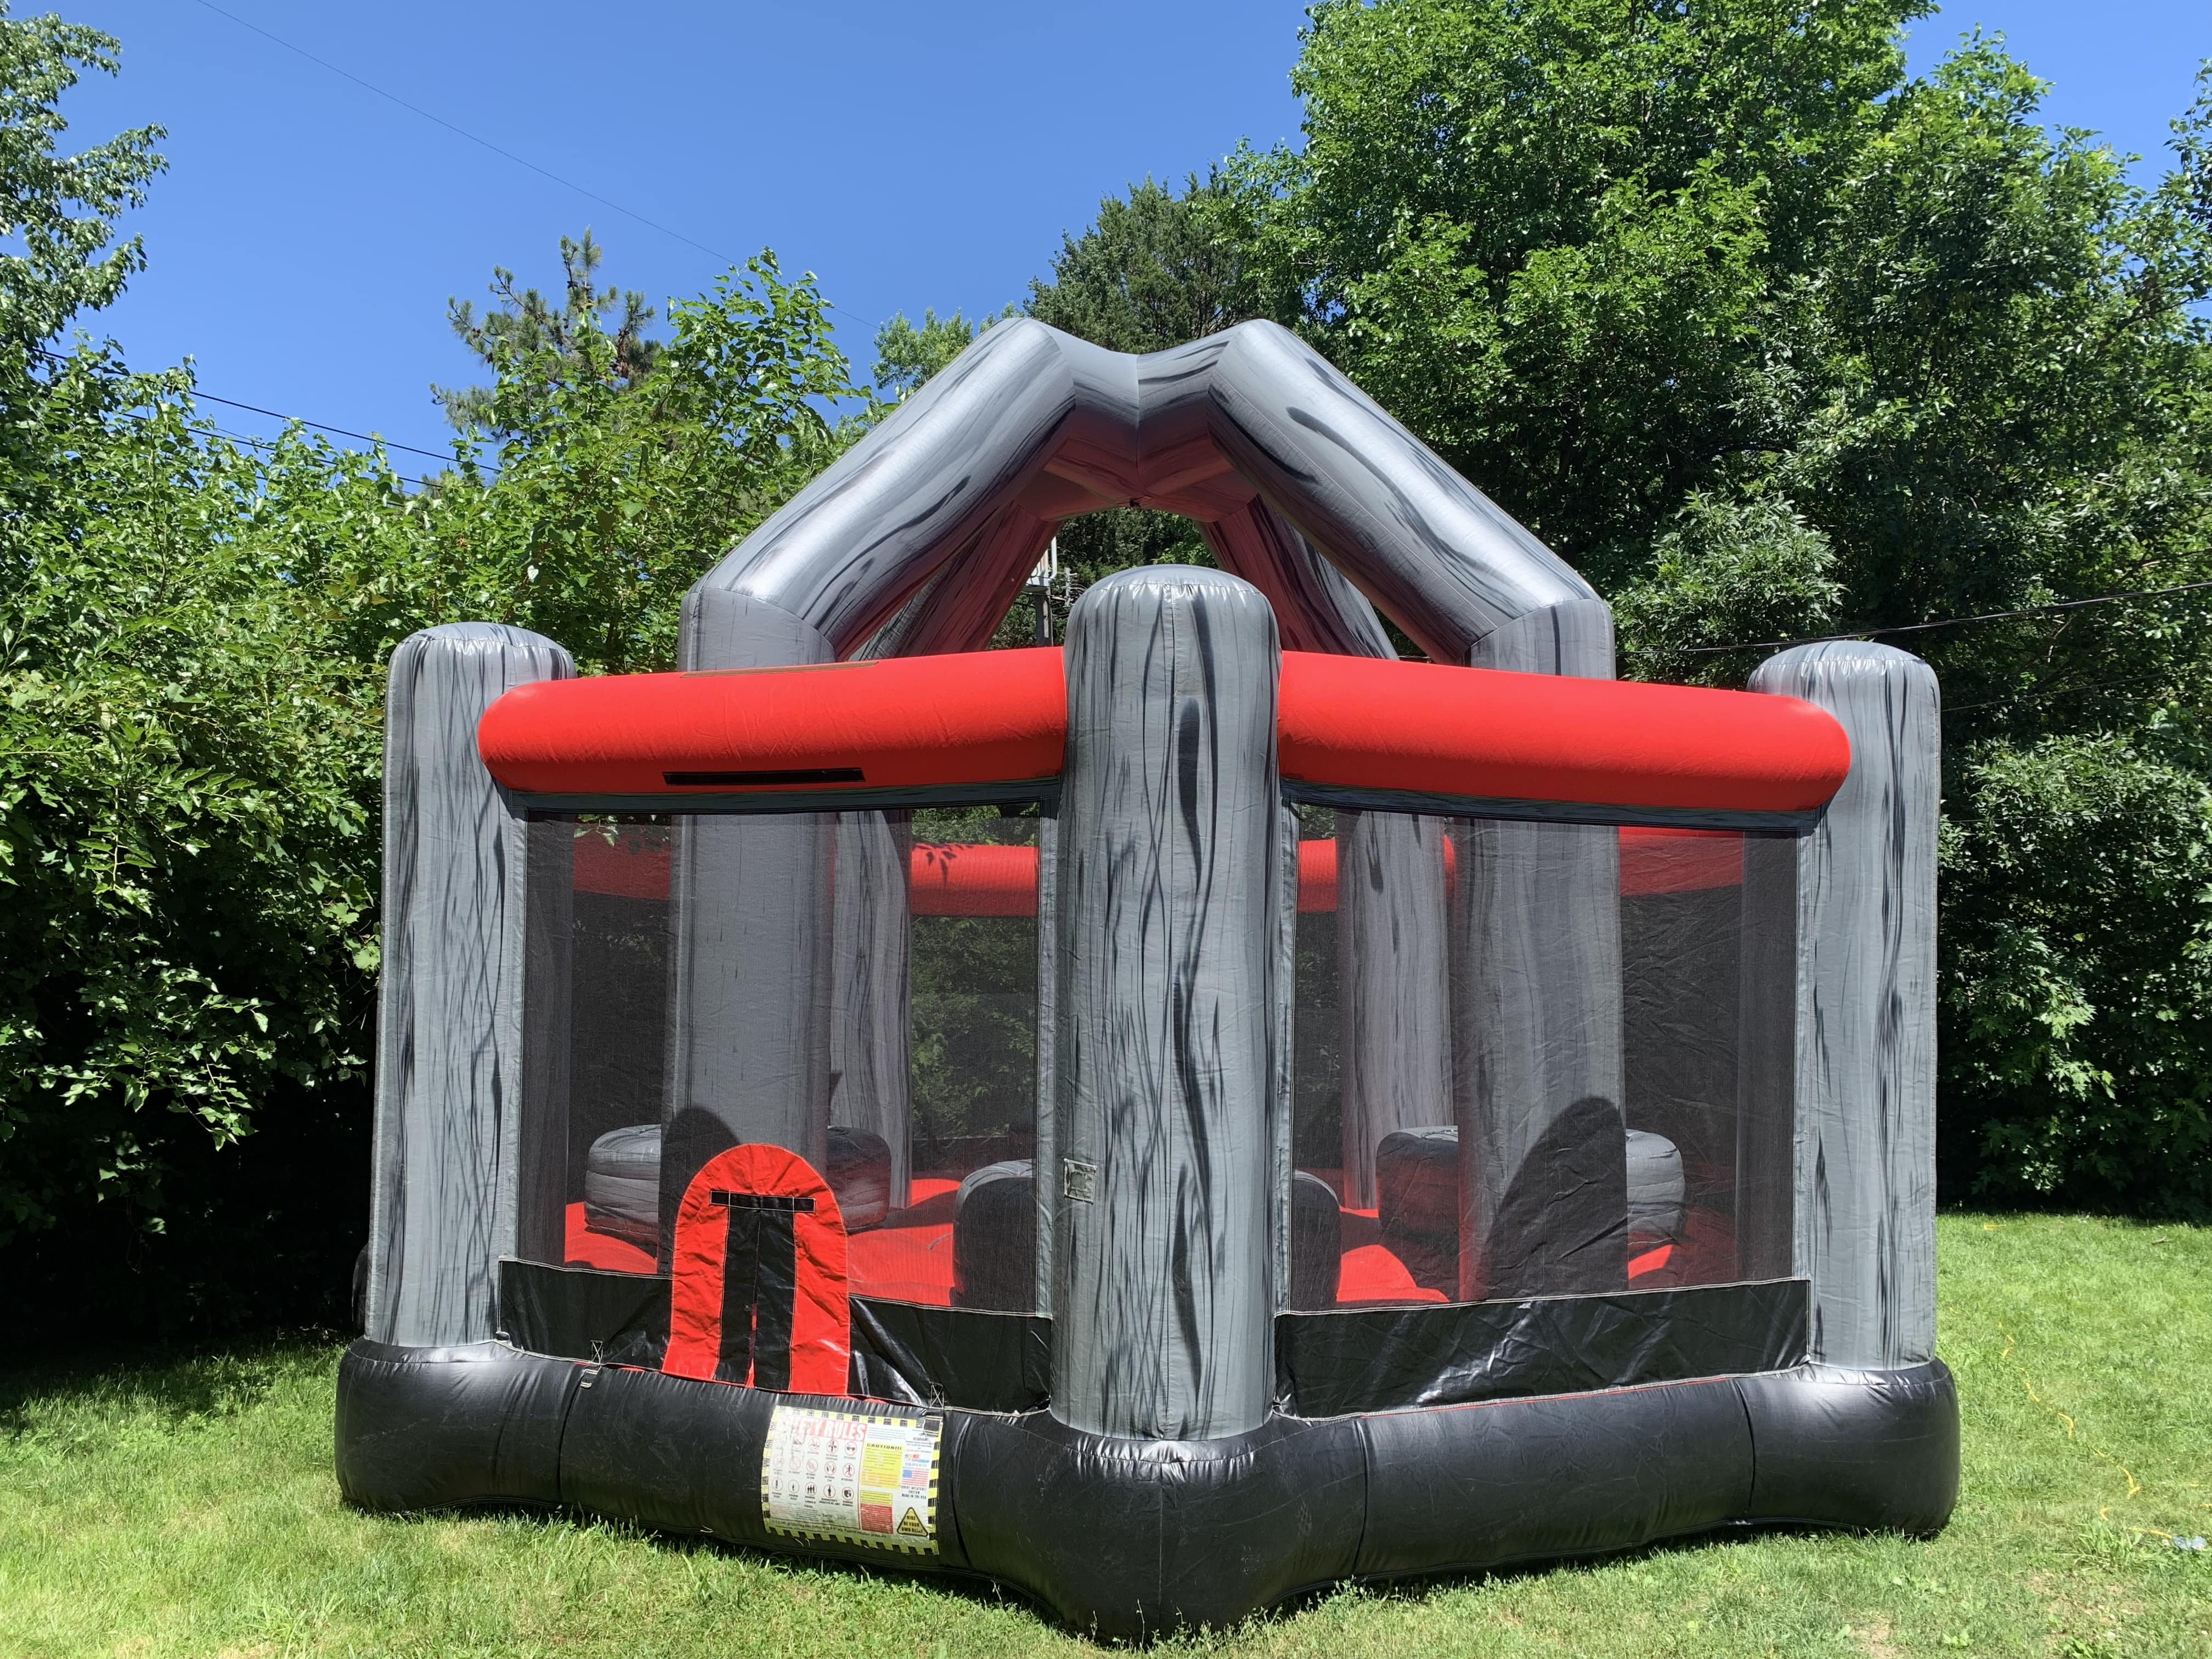 Inflatable wrecking ball challenge.